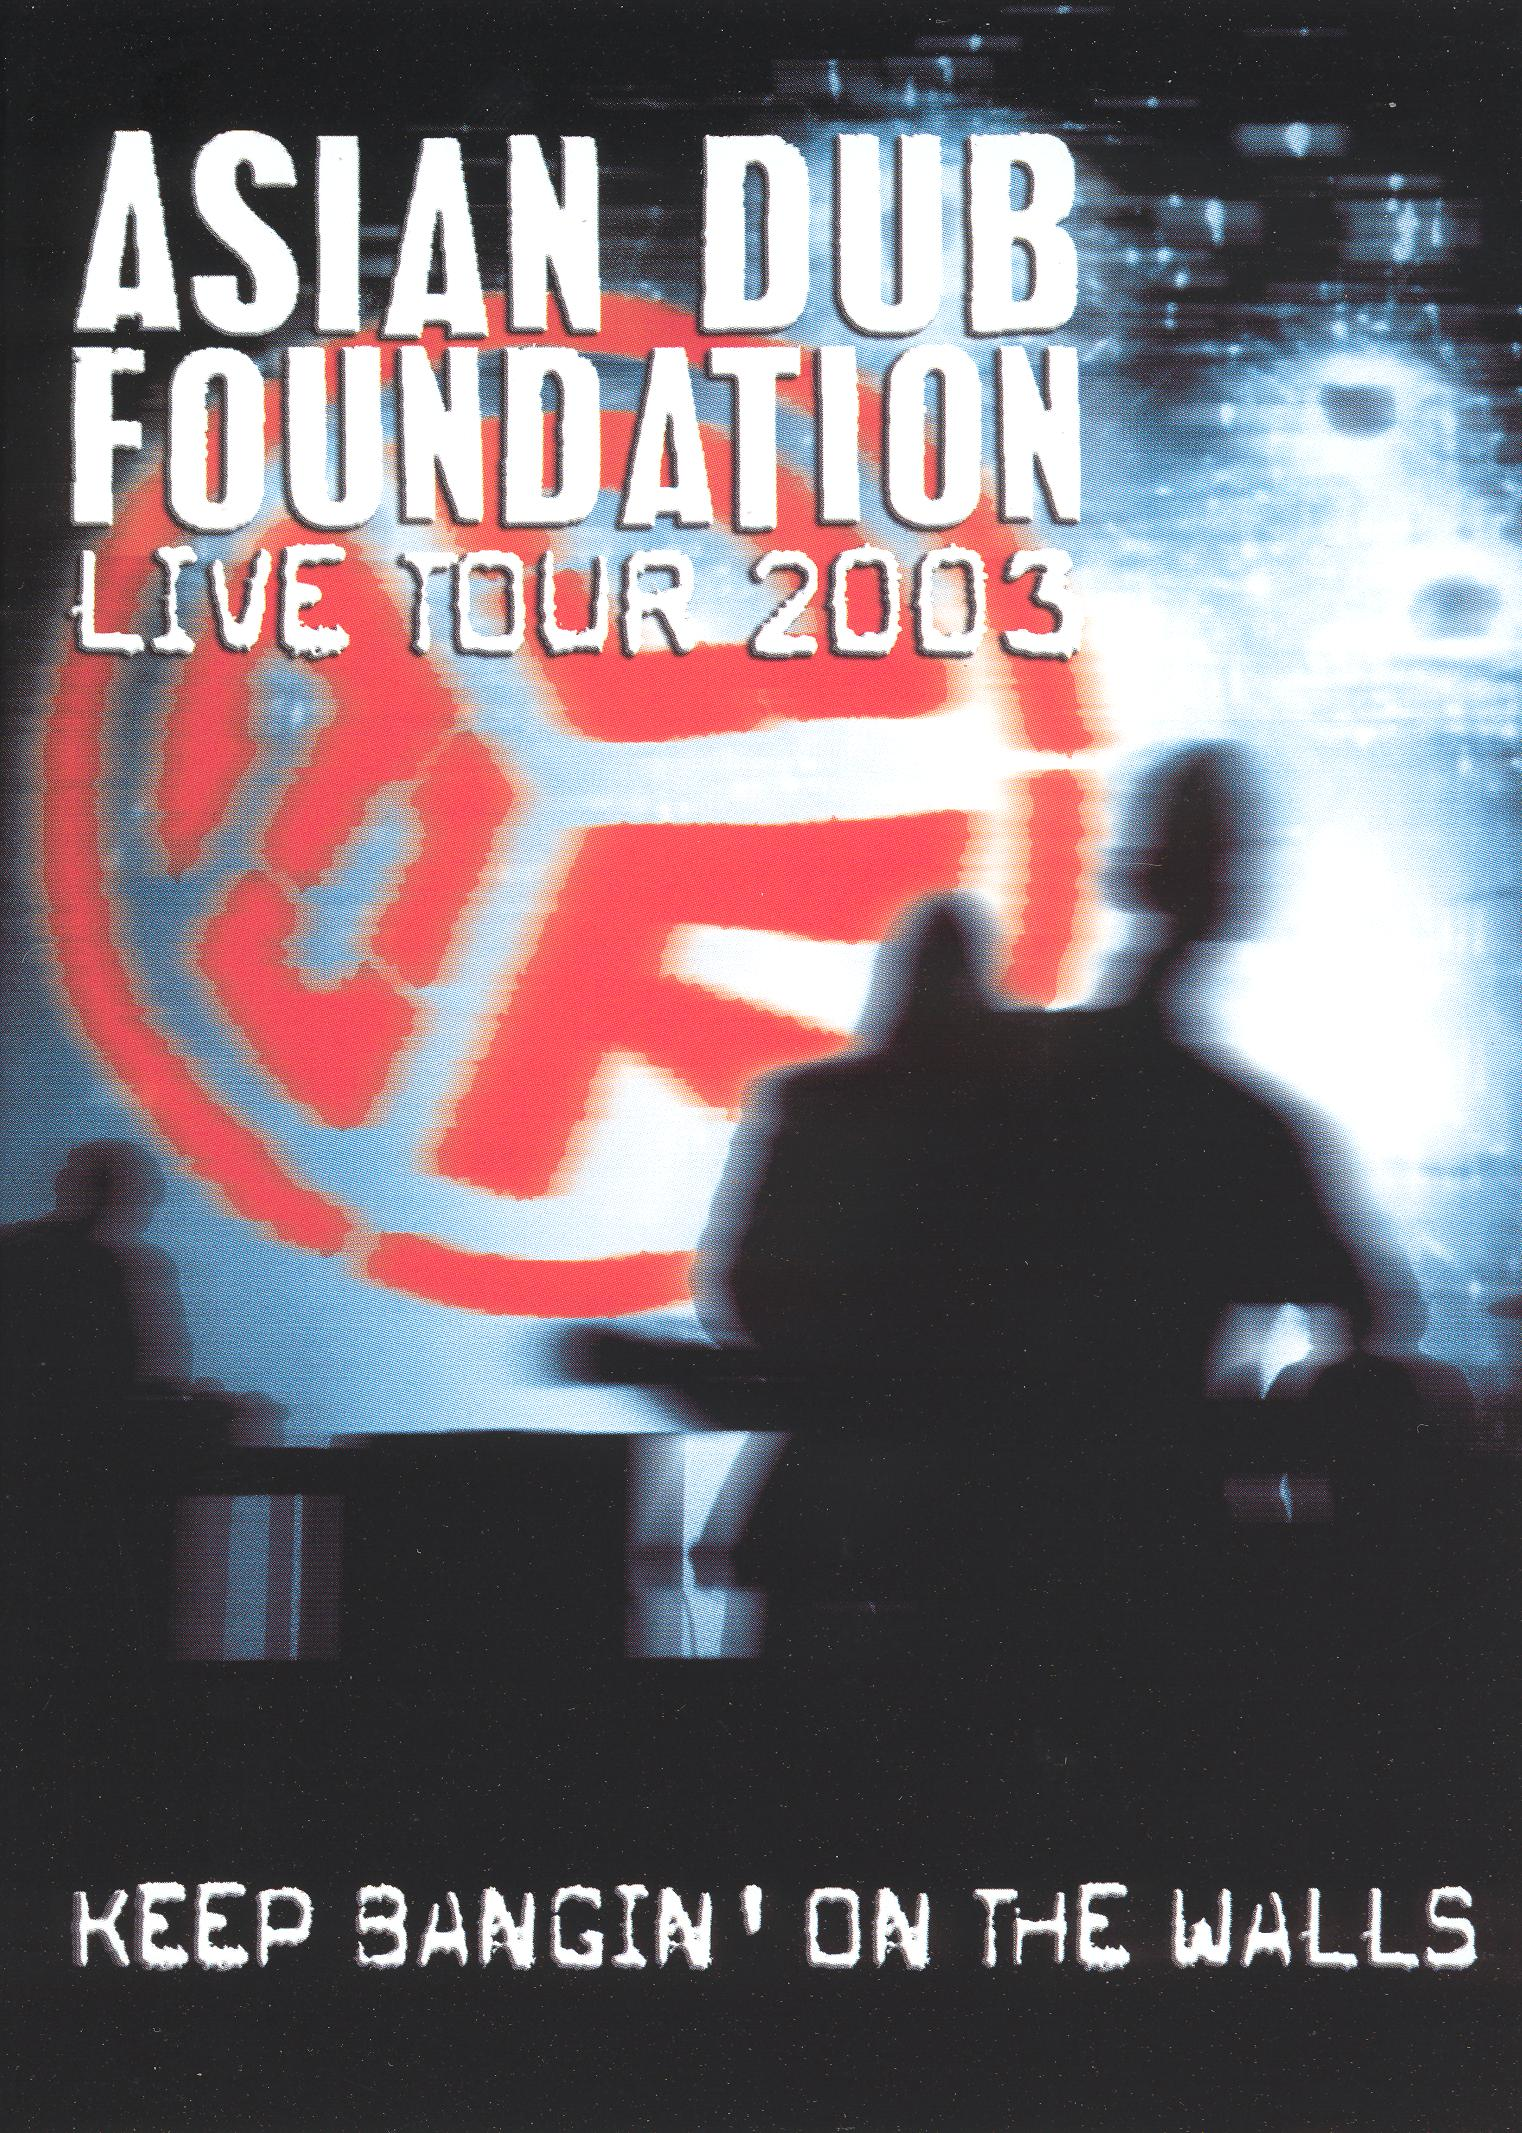 Asian Dub Foundation: Live Tour 2003 - Keep Bangin' on the Walls